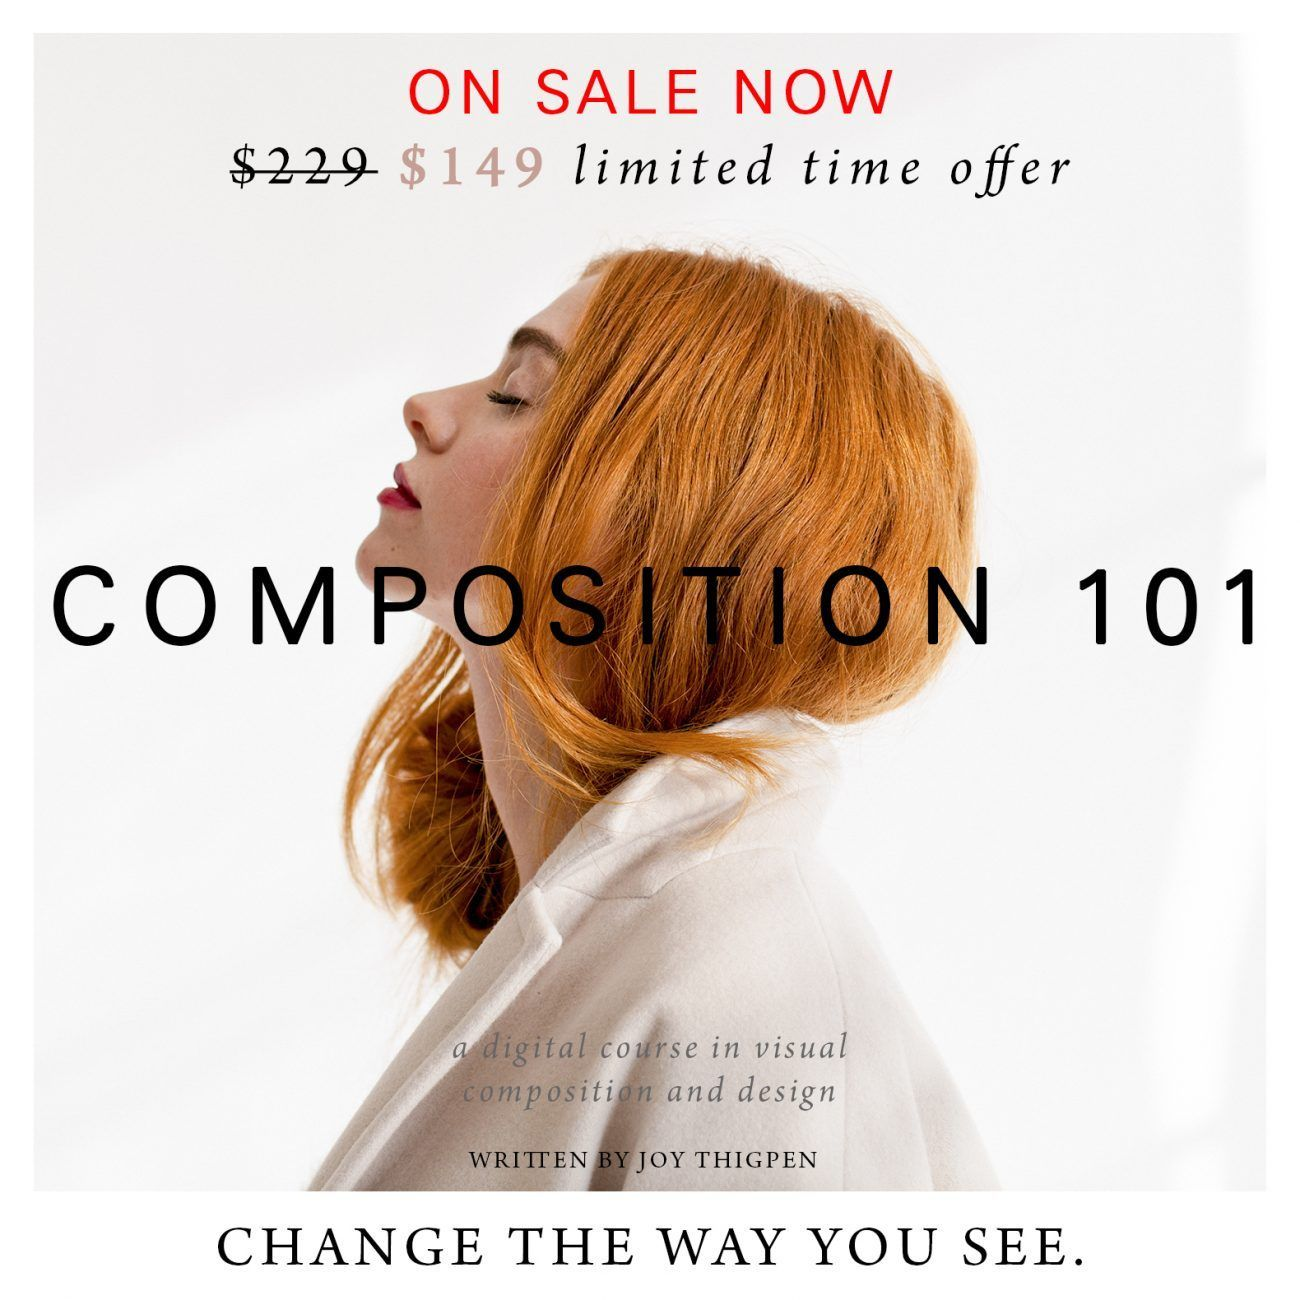 Composition 101 - A Digital Course by Once Wed and Joy Thigpen